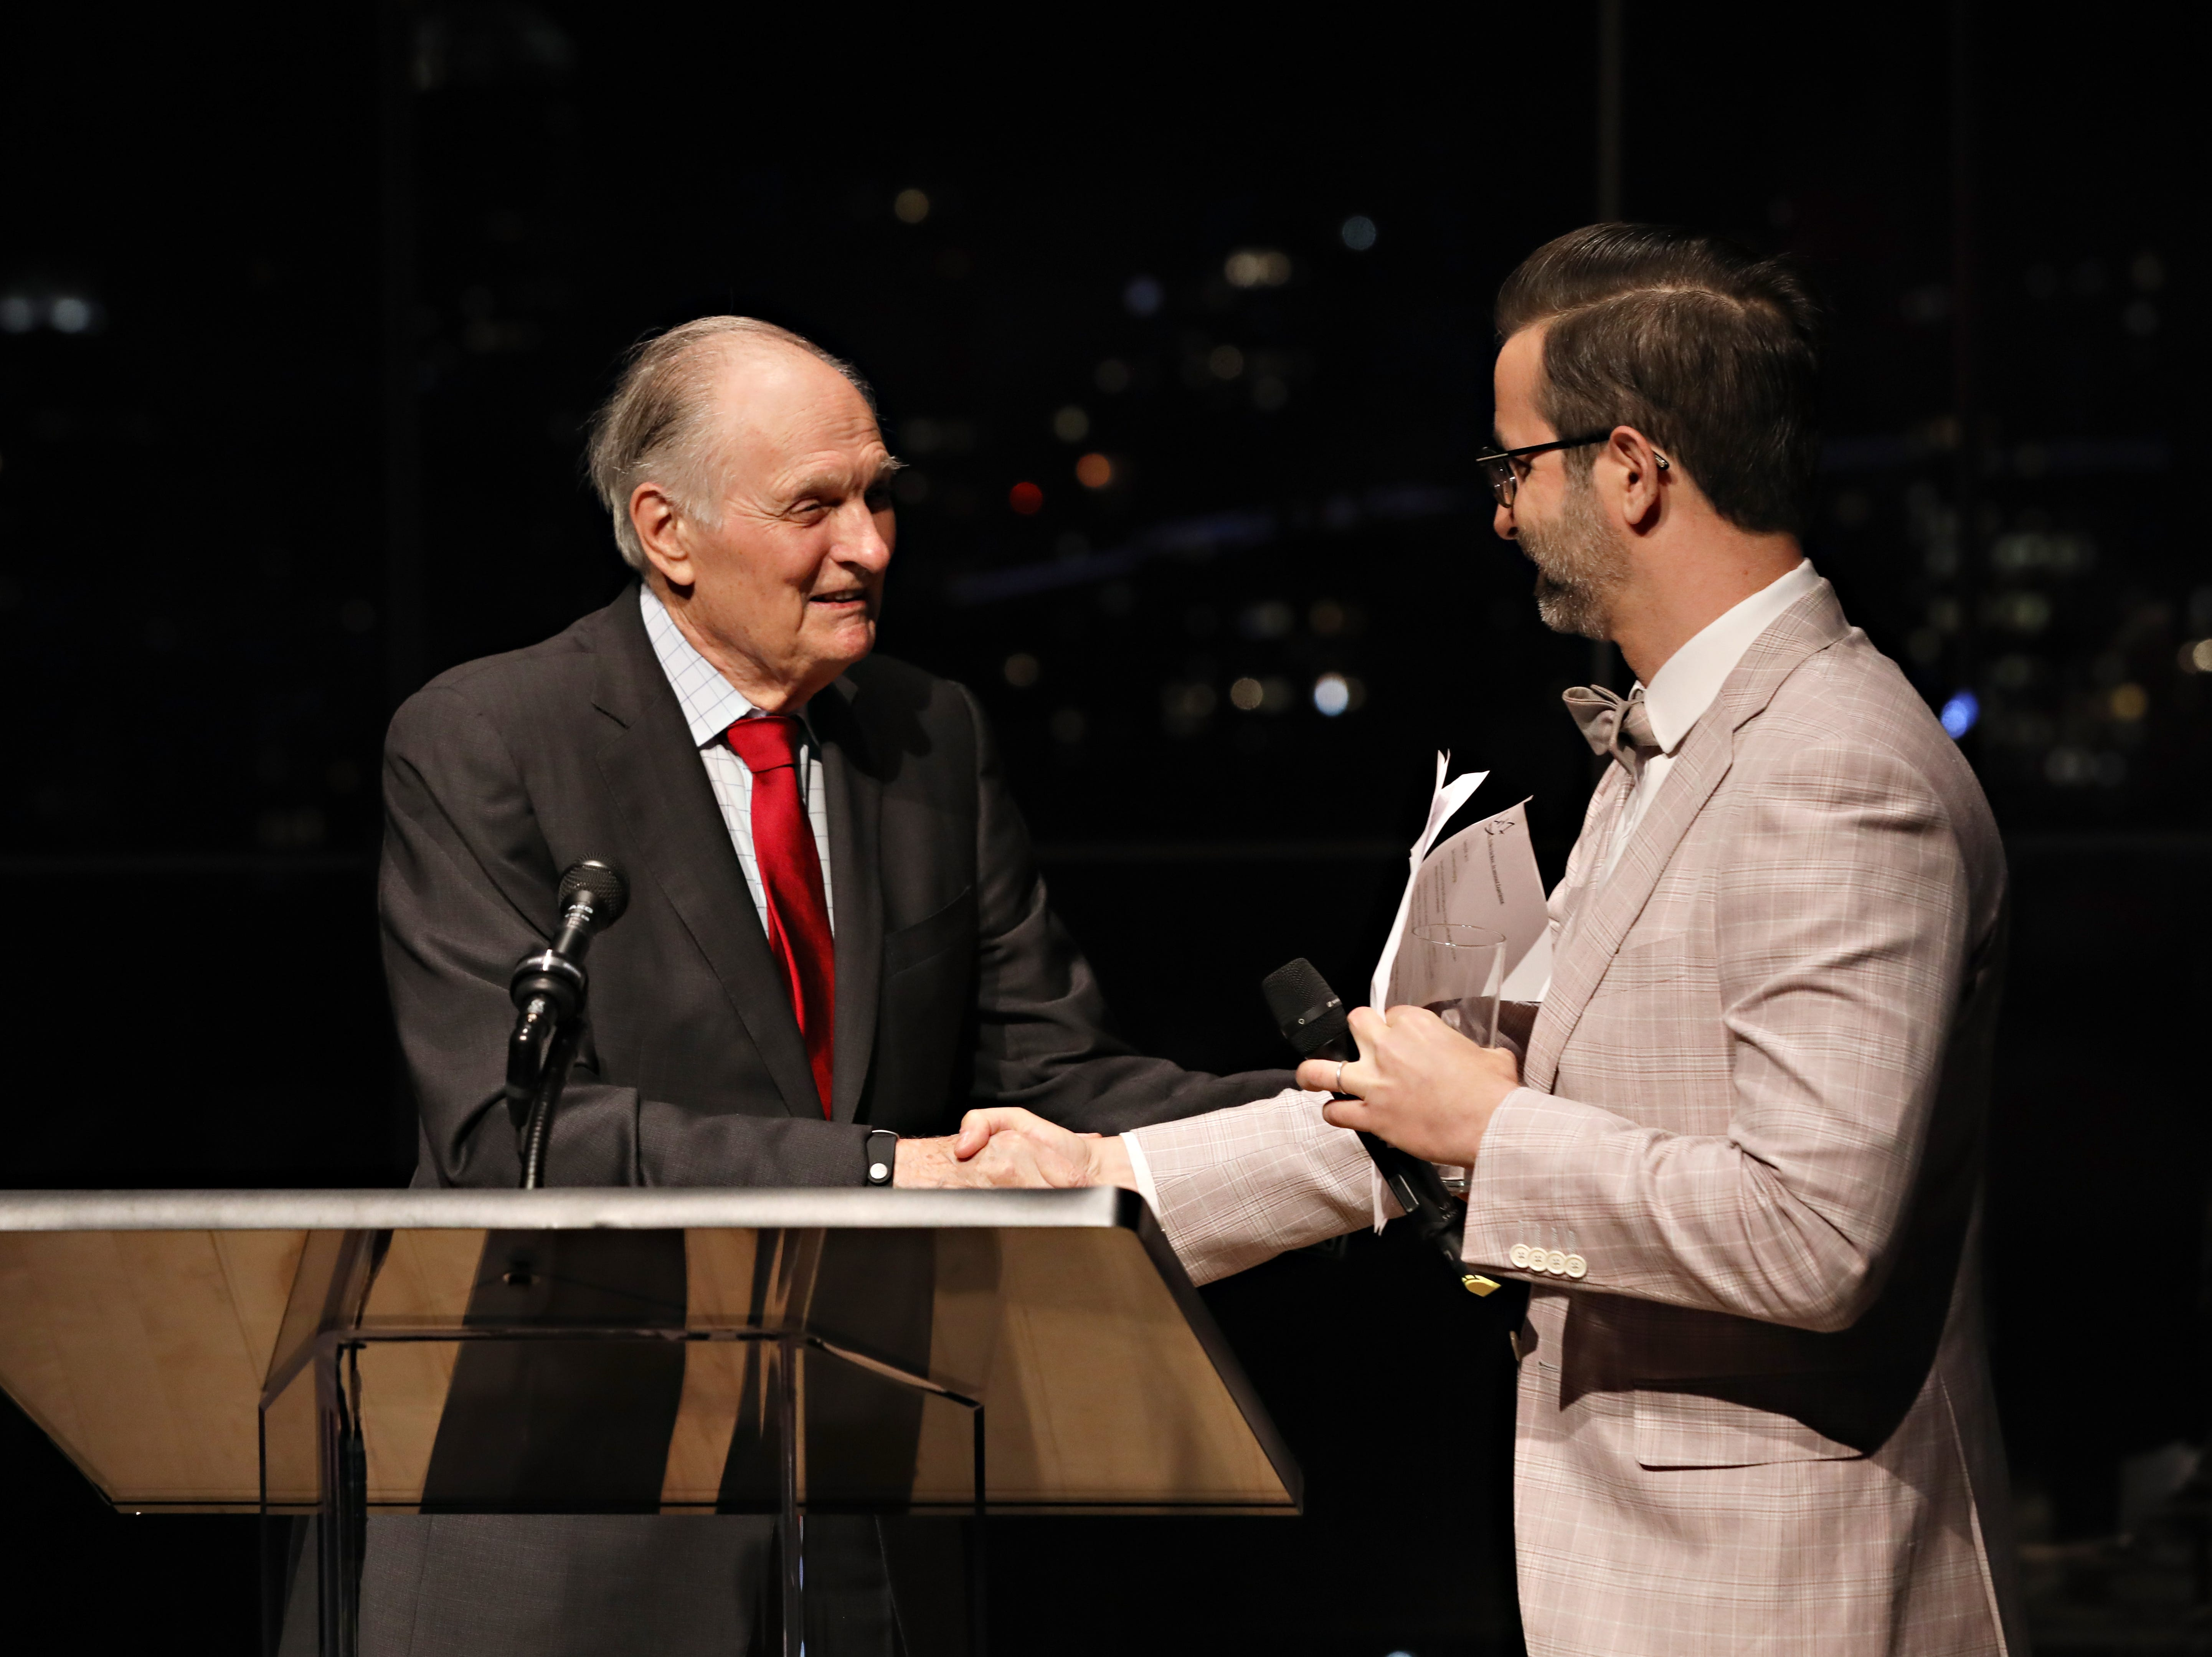 Actor Alan Alda and auctioneer Charles Antin speak during World Science Festival's 12th Annual Gala at Jazz at Lincoln Center on May 22, 2019 in New York City.